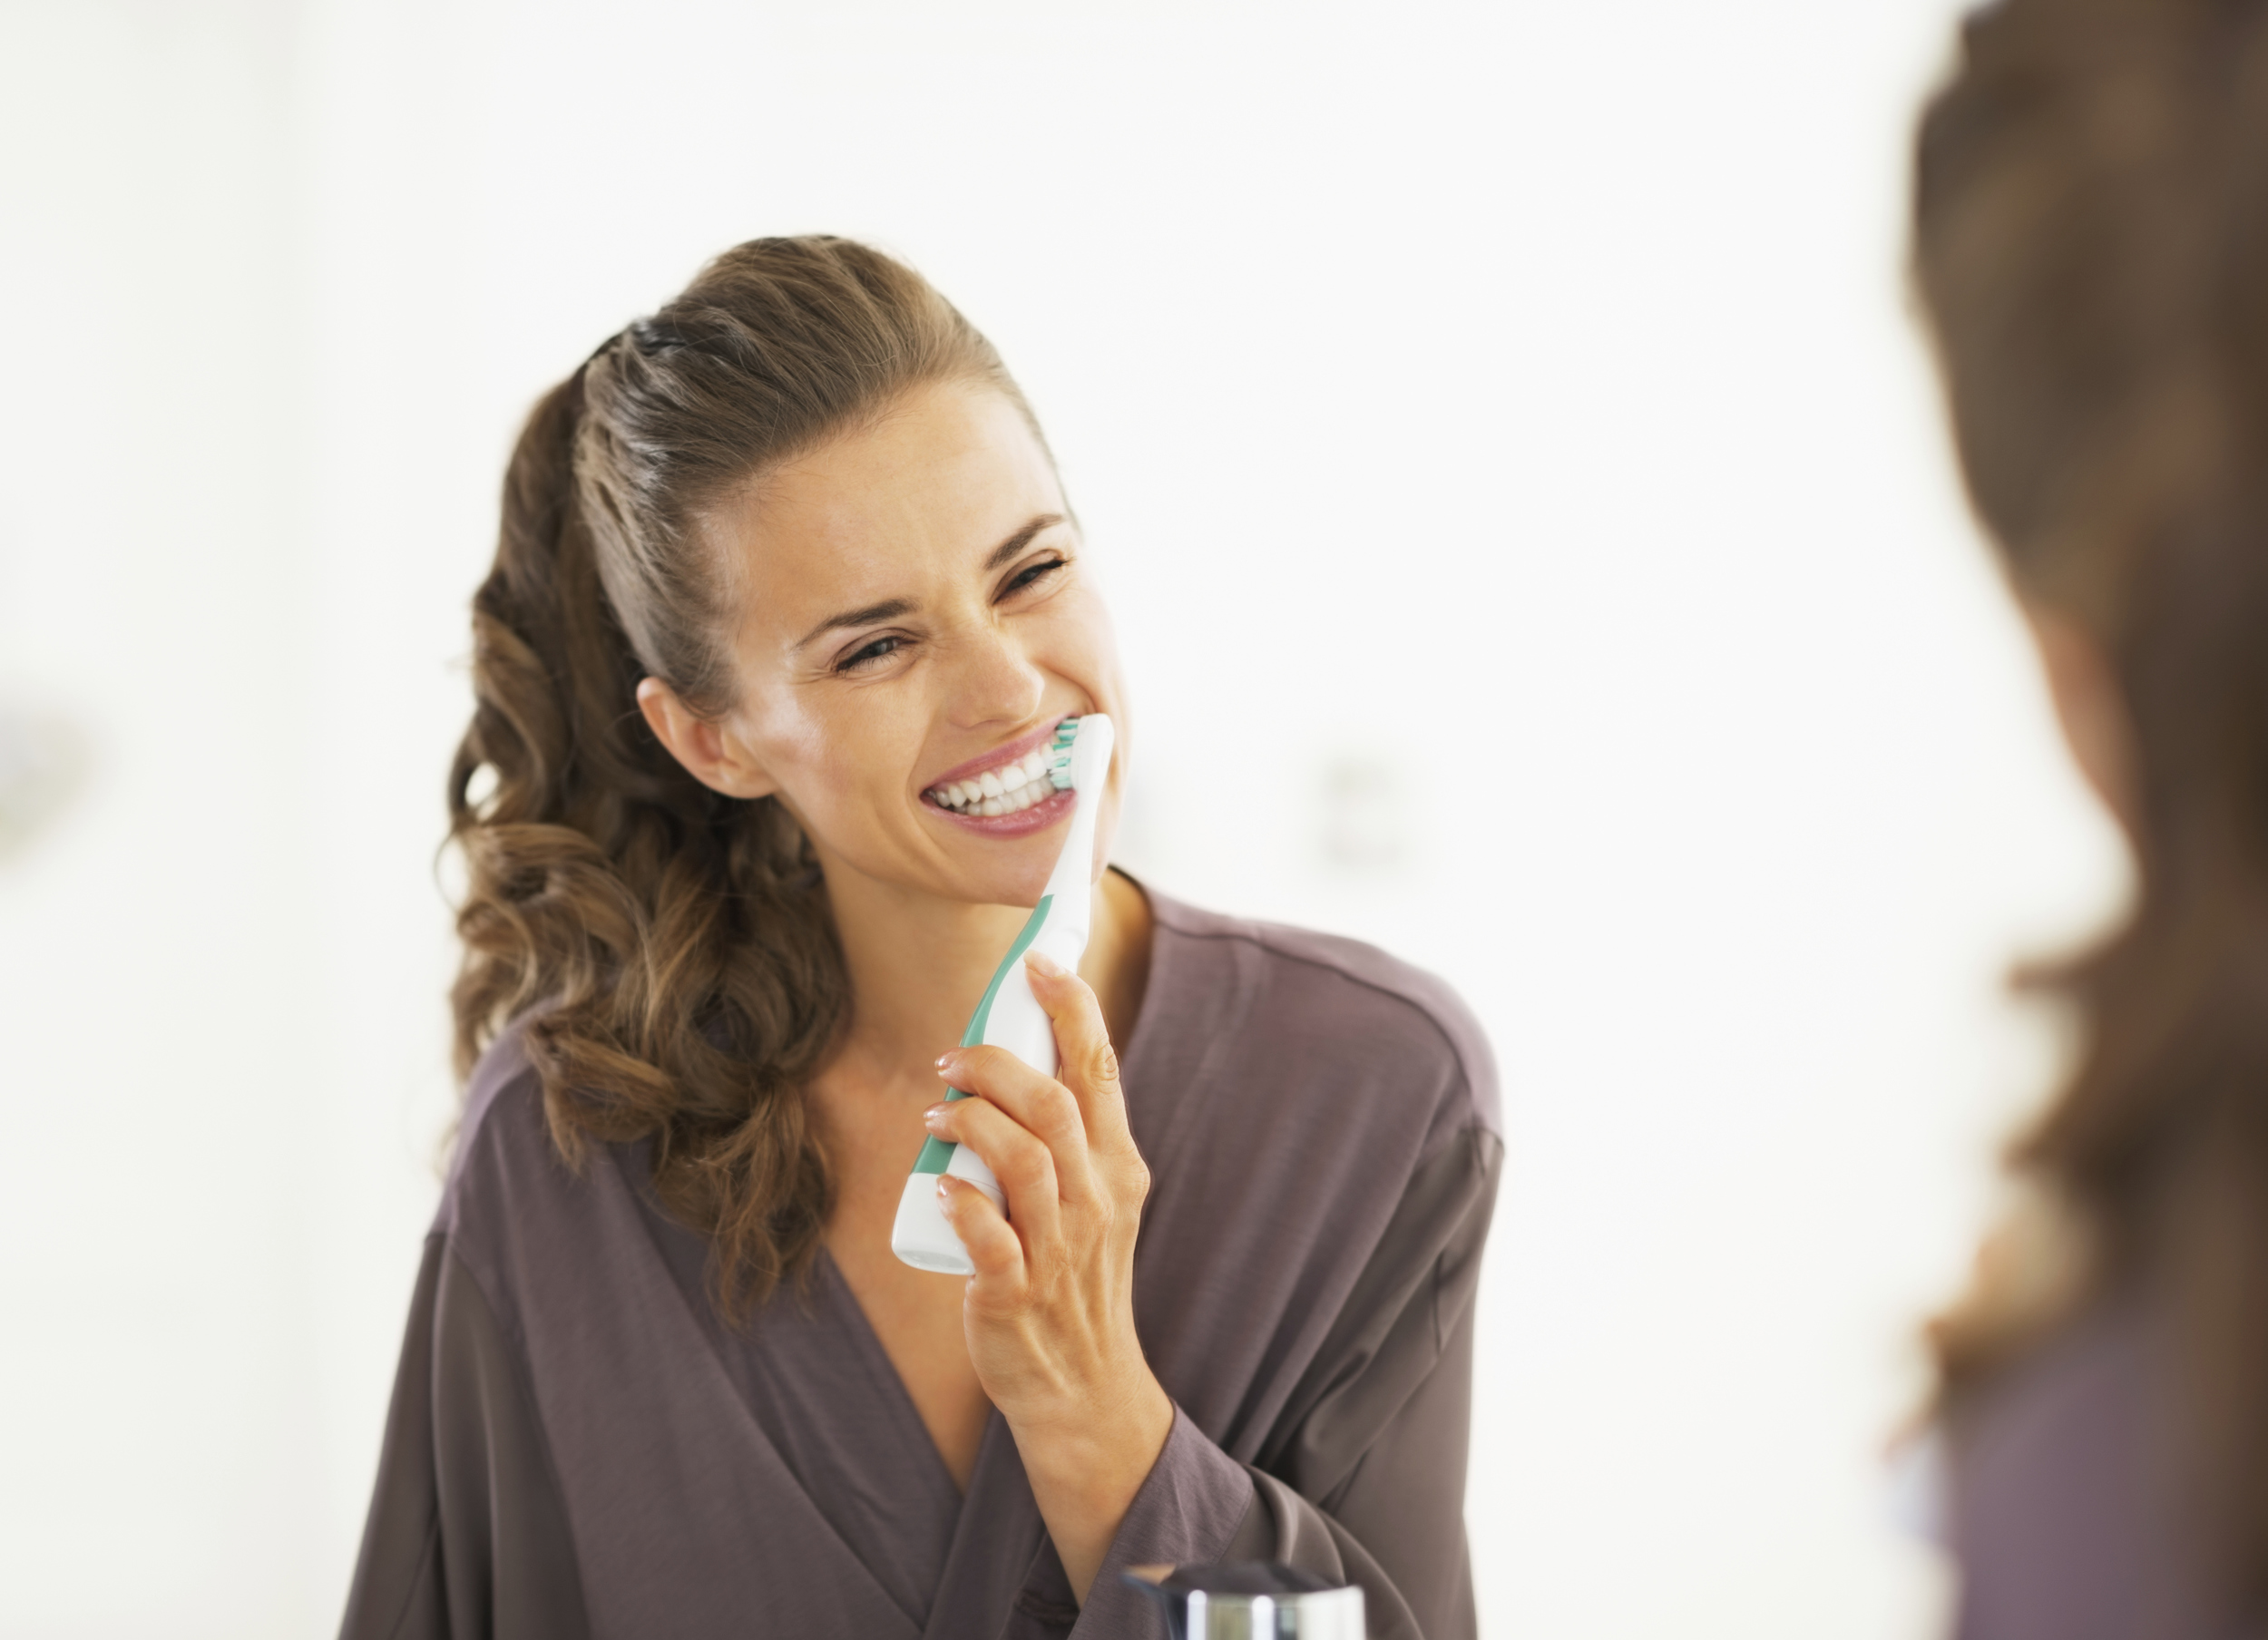 Town Center Dentistry in Rancho Bernardo offers the best dental implant specialists in San Diego. Read our guide on dental implant care and maintenance to keep your dental implants in great condition.